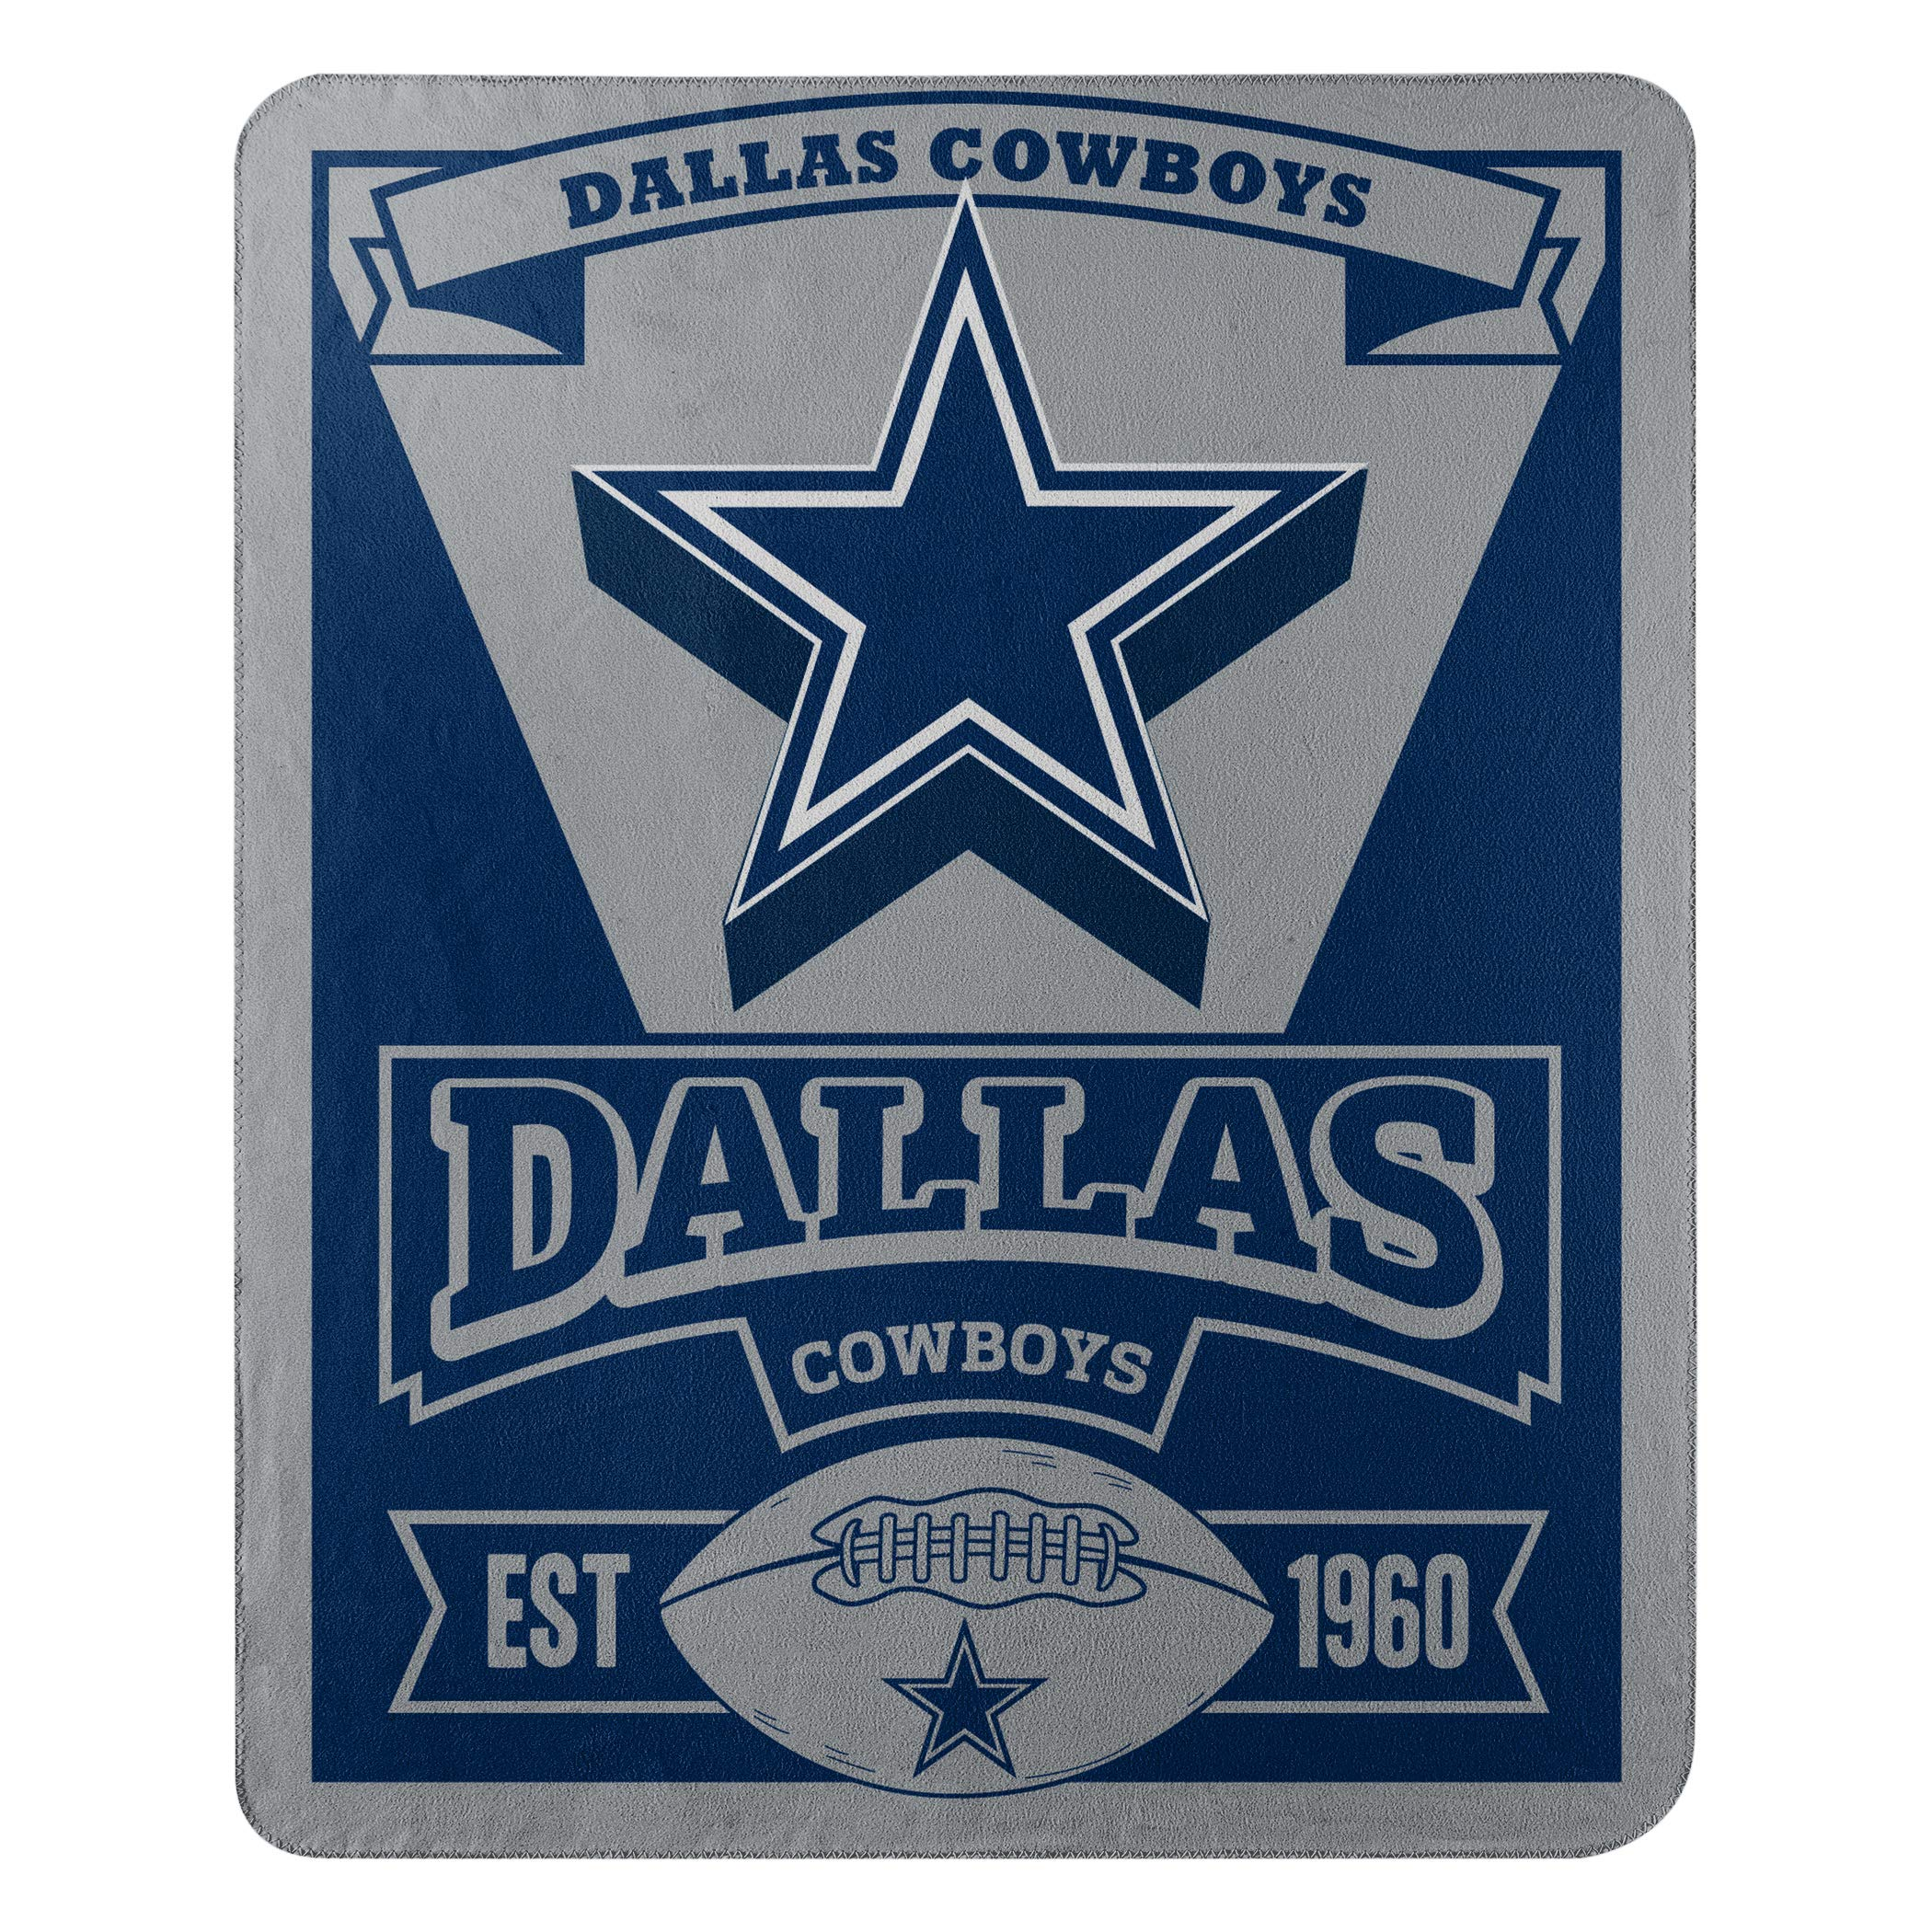 The Northwest Company Officially Licensed NFL Dallas Cowboys Marque Printed Fleece Throw Blanket, 50'' x 60'', Multi Color by The Northwest Company